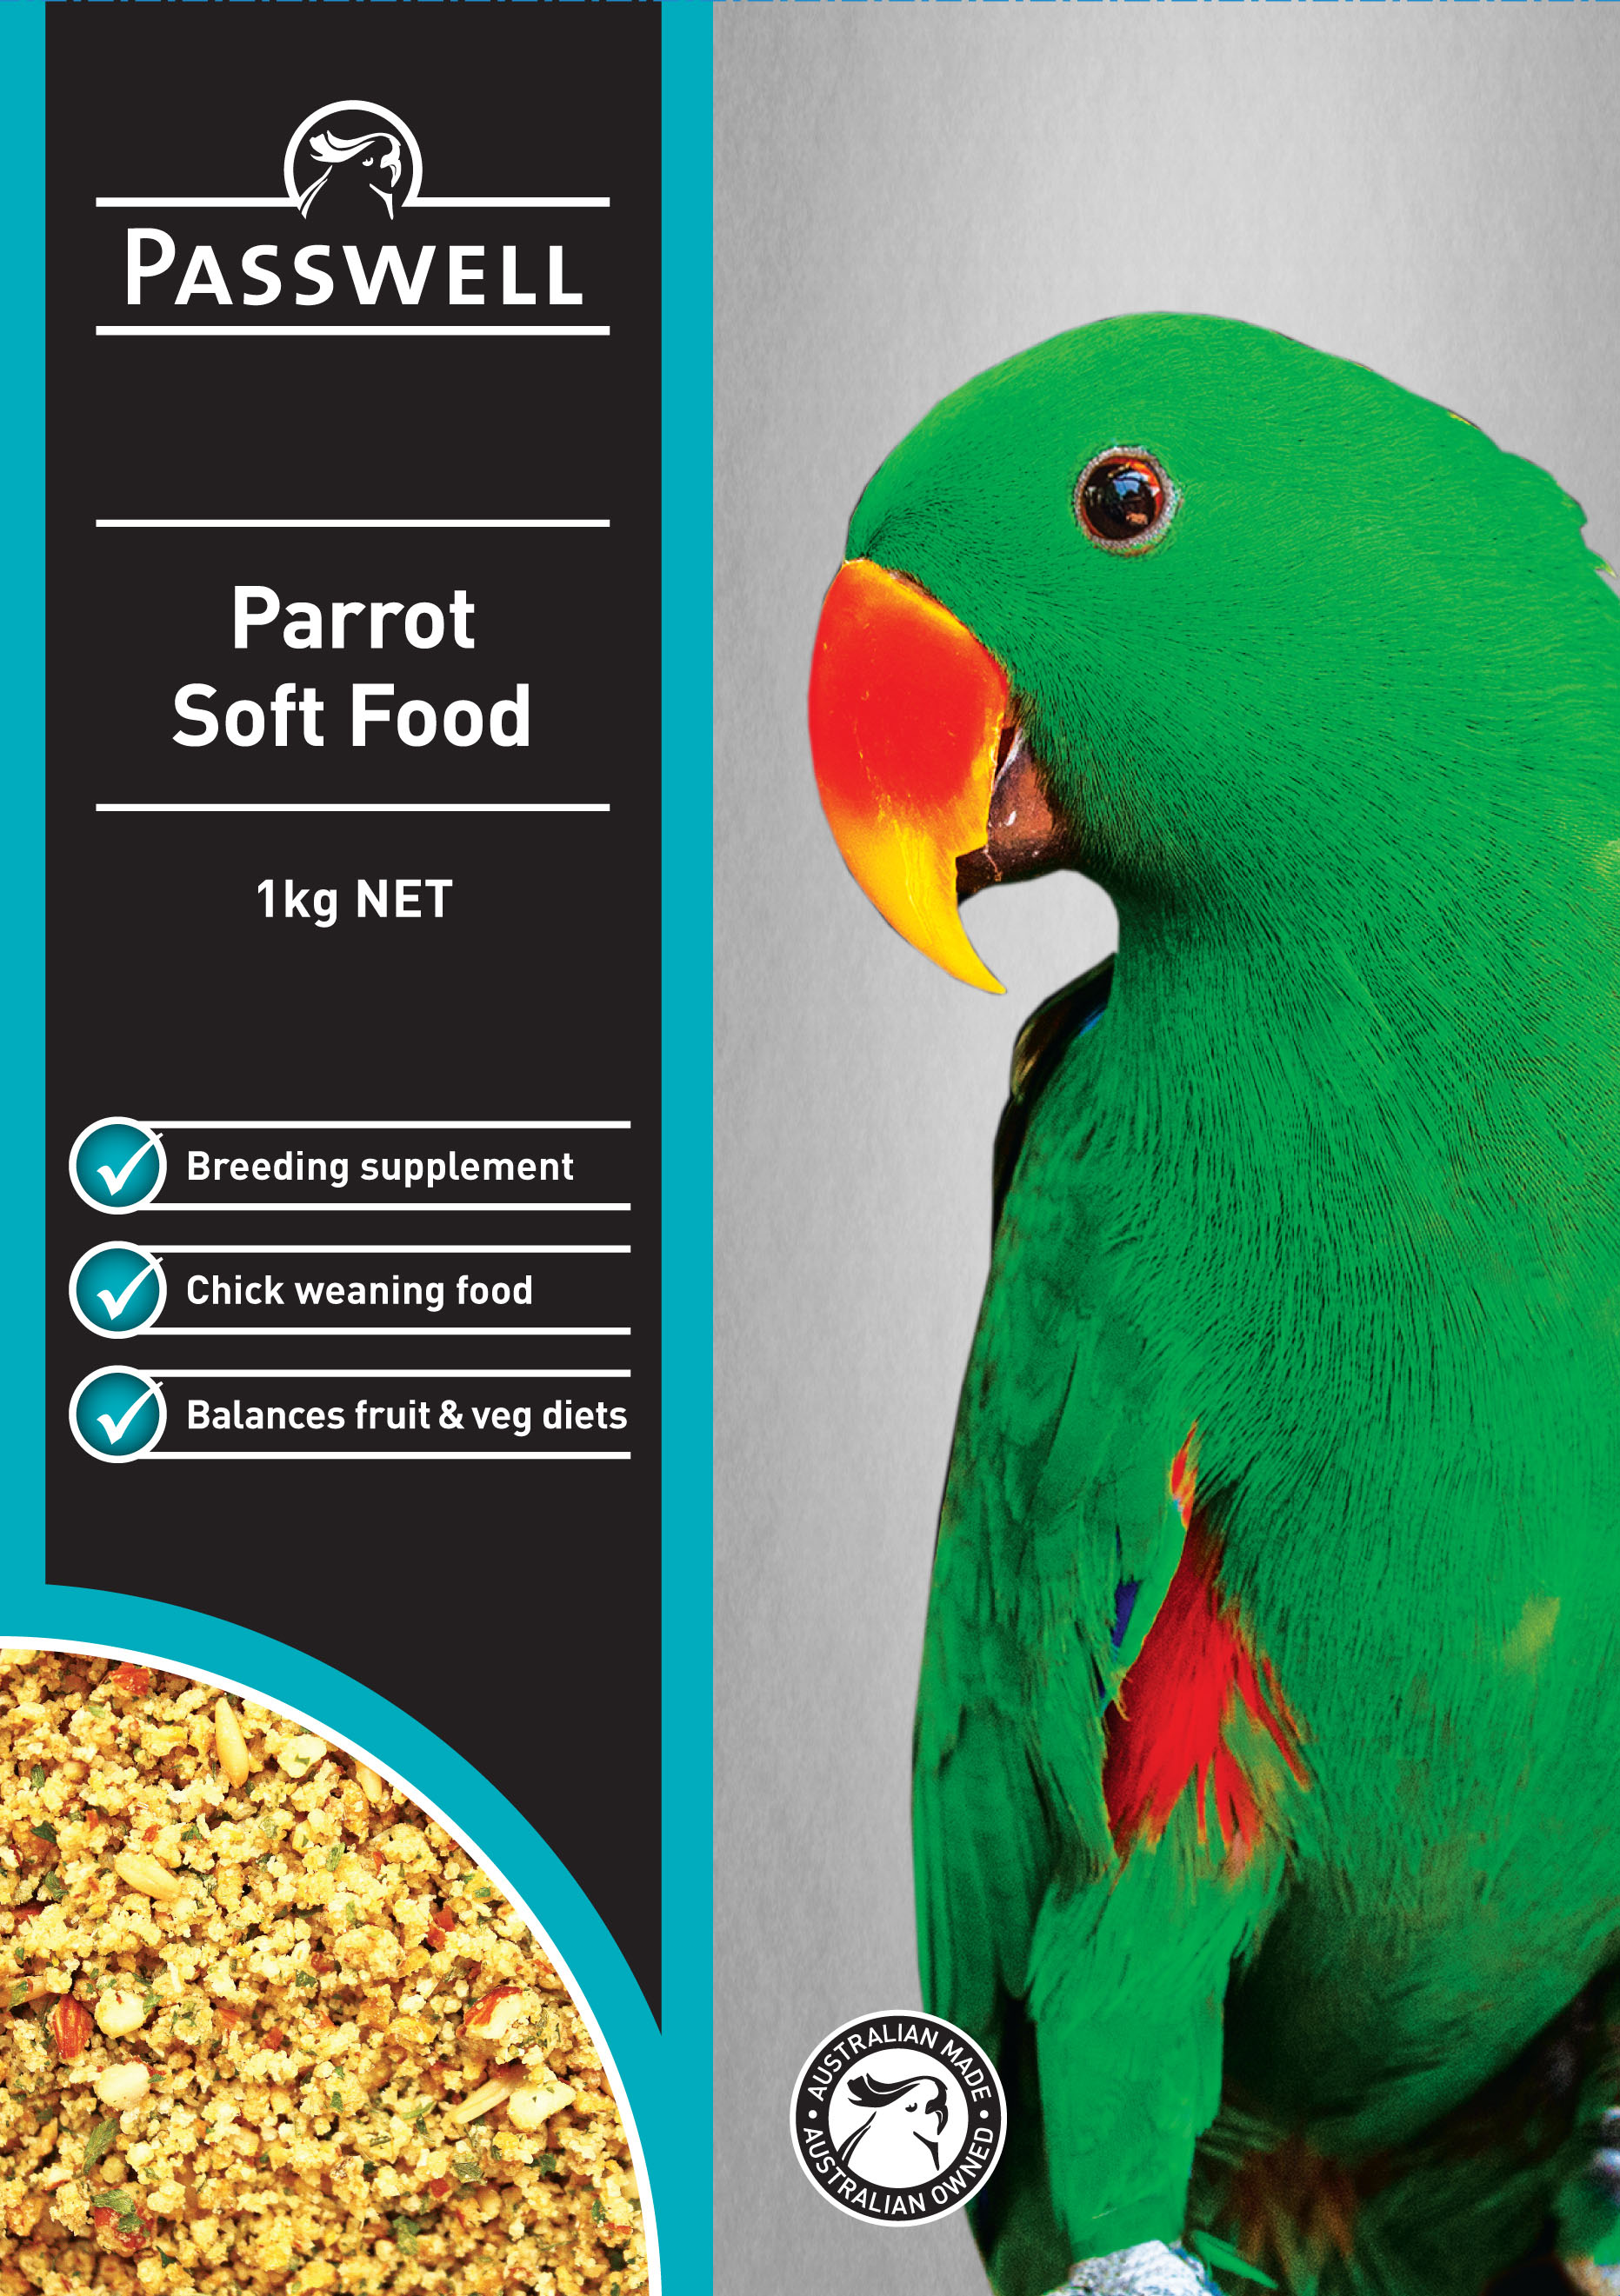 Parrot Soft food image